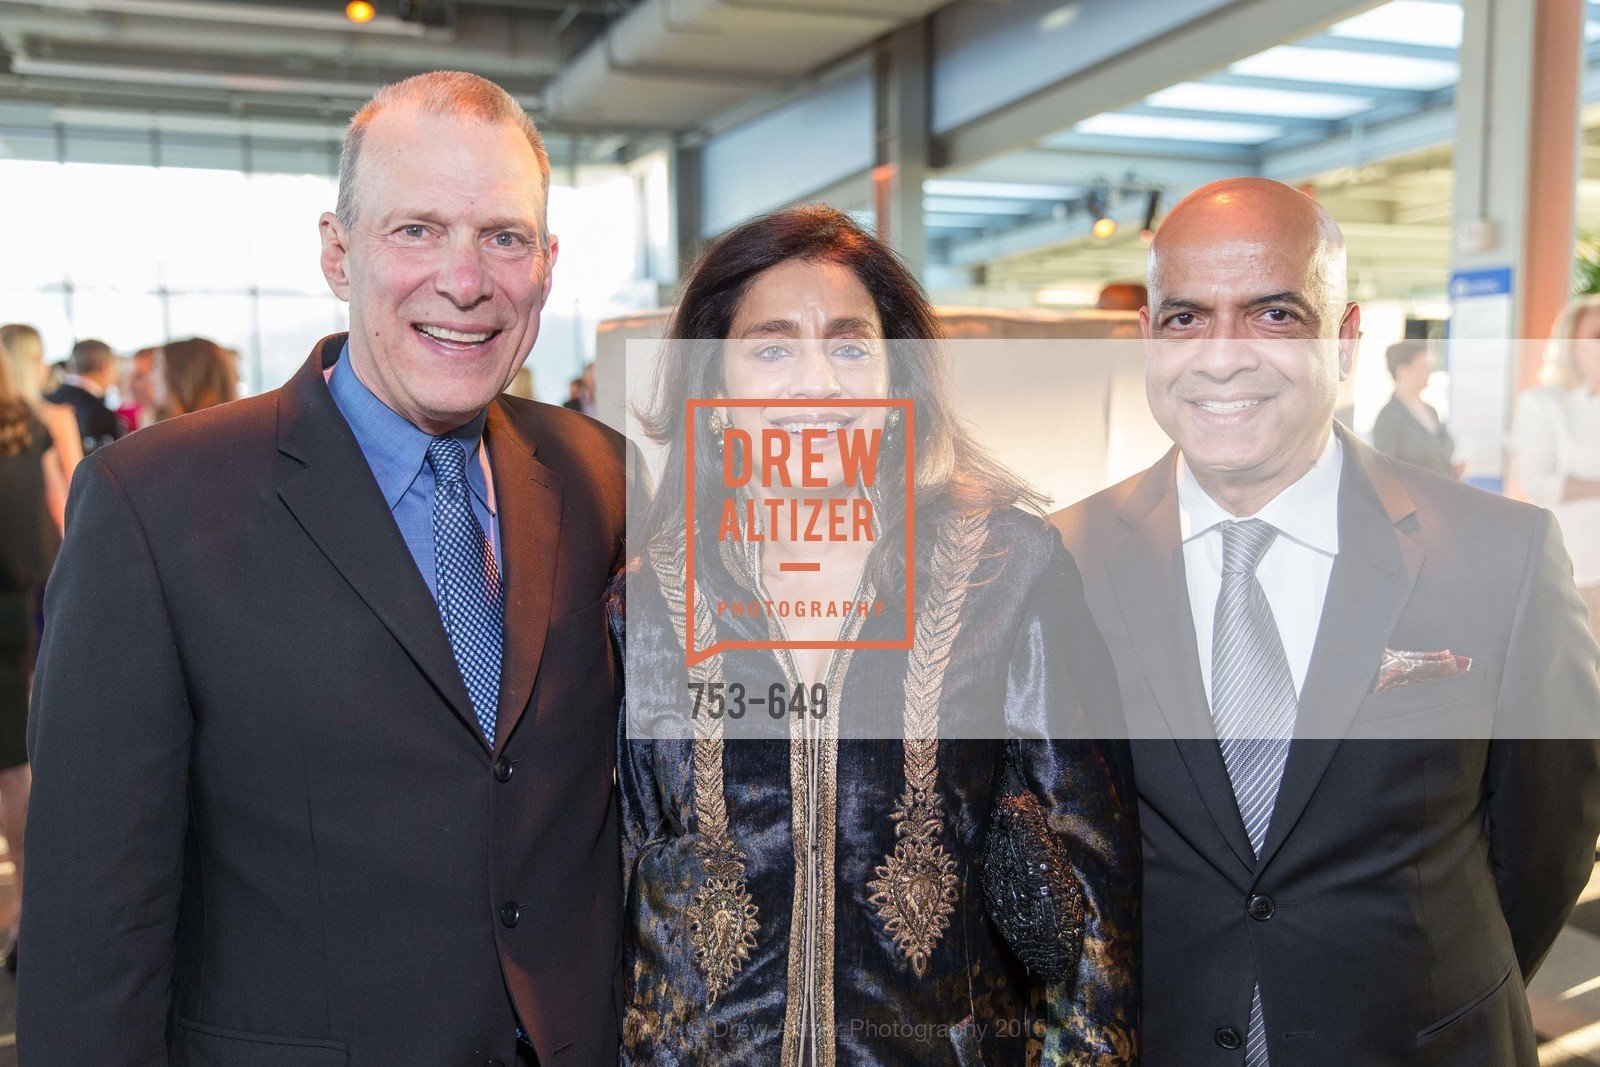 David Gockley, Vinati Mishra, Raje Shindhia, Fashion Forward: An Evening with Erdem presented by SF Opera Guild and Saks Fifth Avenue, Pier 27. Pier 27, The Embarcadero, March 25th, 2015,Drew Altizer, Drew Altizer Photography, full-service agency, private events, San Francisco photographer, photographer california